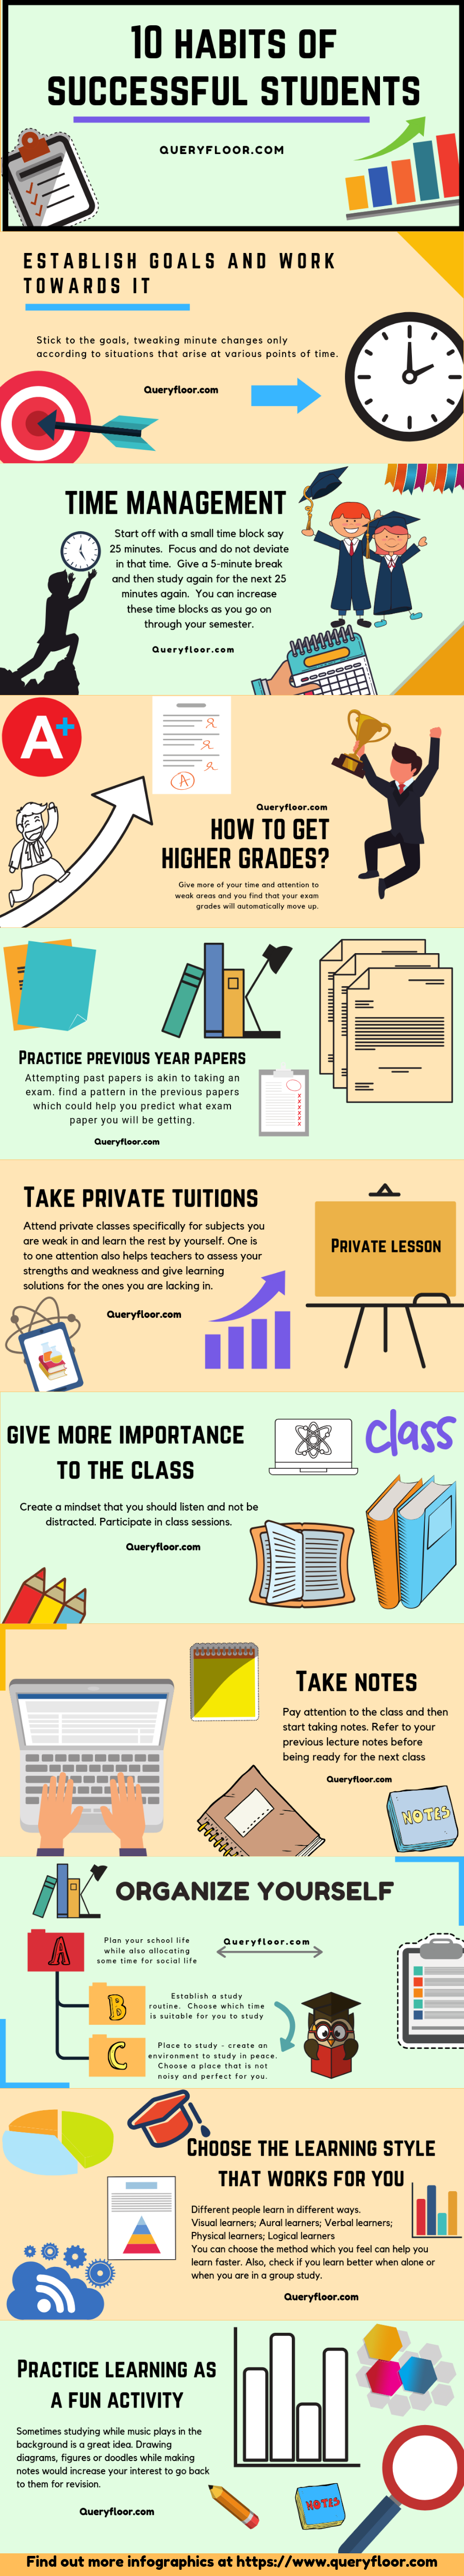 10 habits of successful students.png